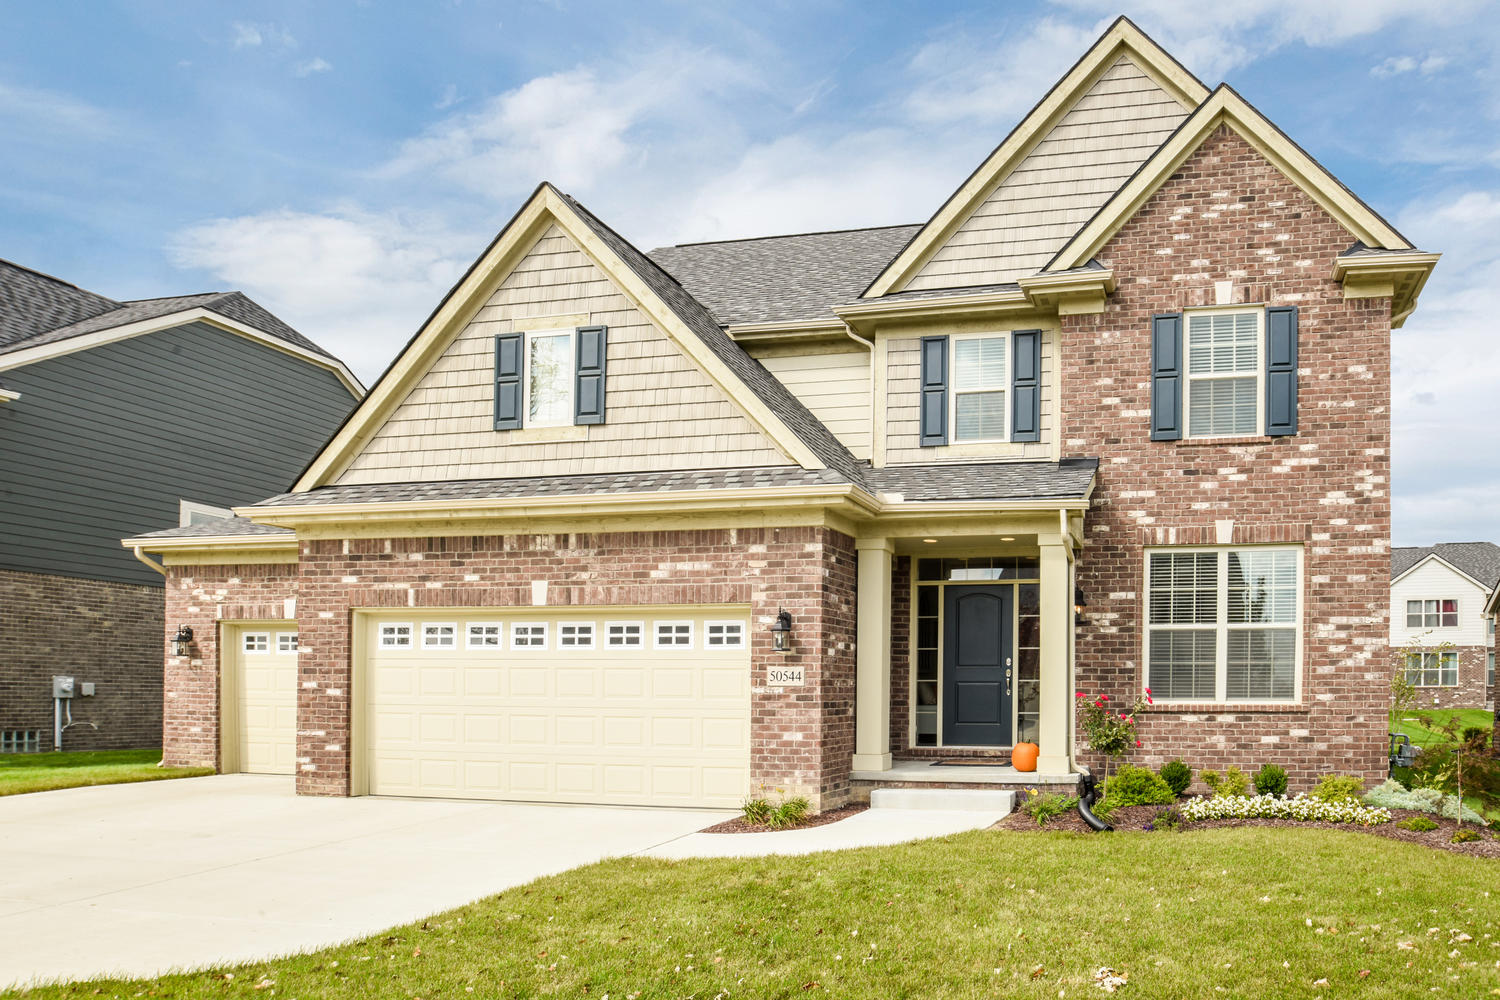 50544 Woodford Dr, Canton, MI | Manors at the Hamlet